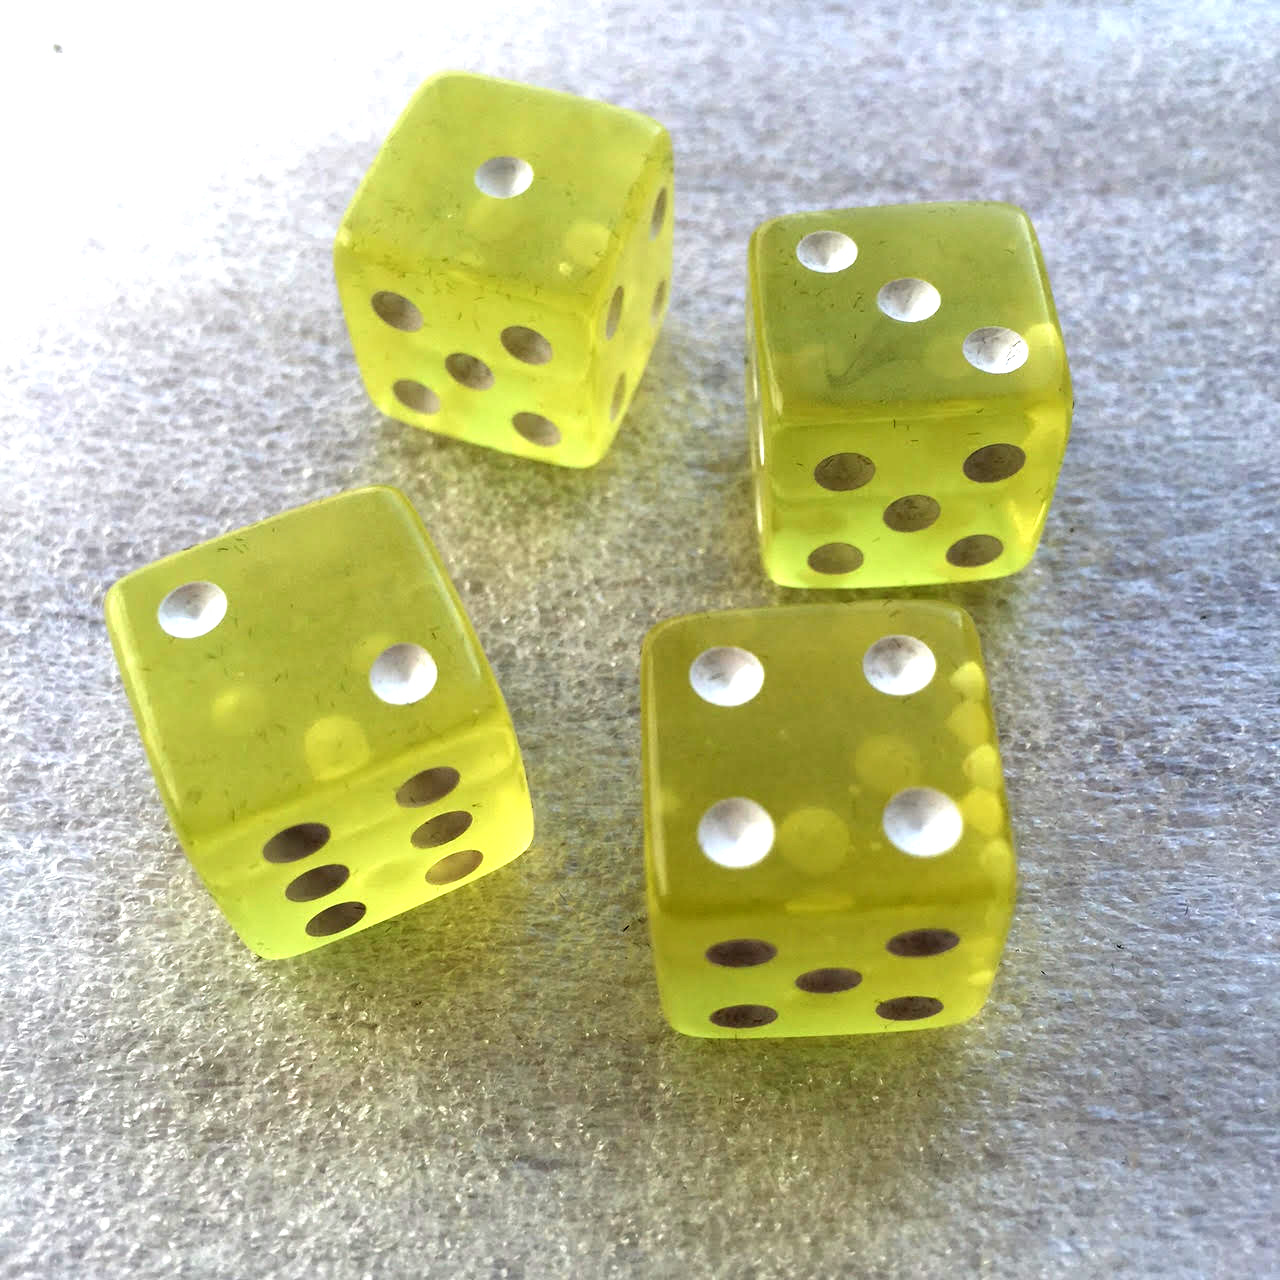 Yellow dice (x4 in the 1st add-on).